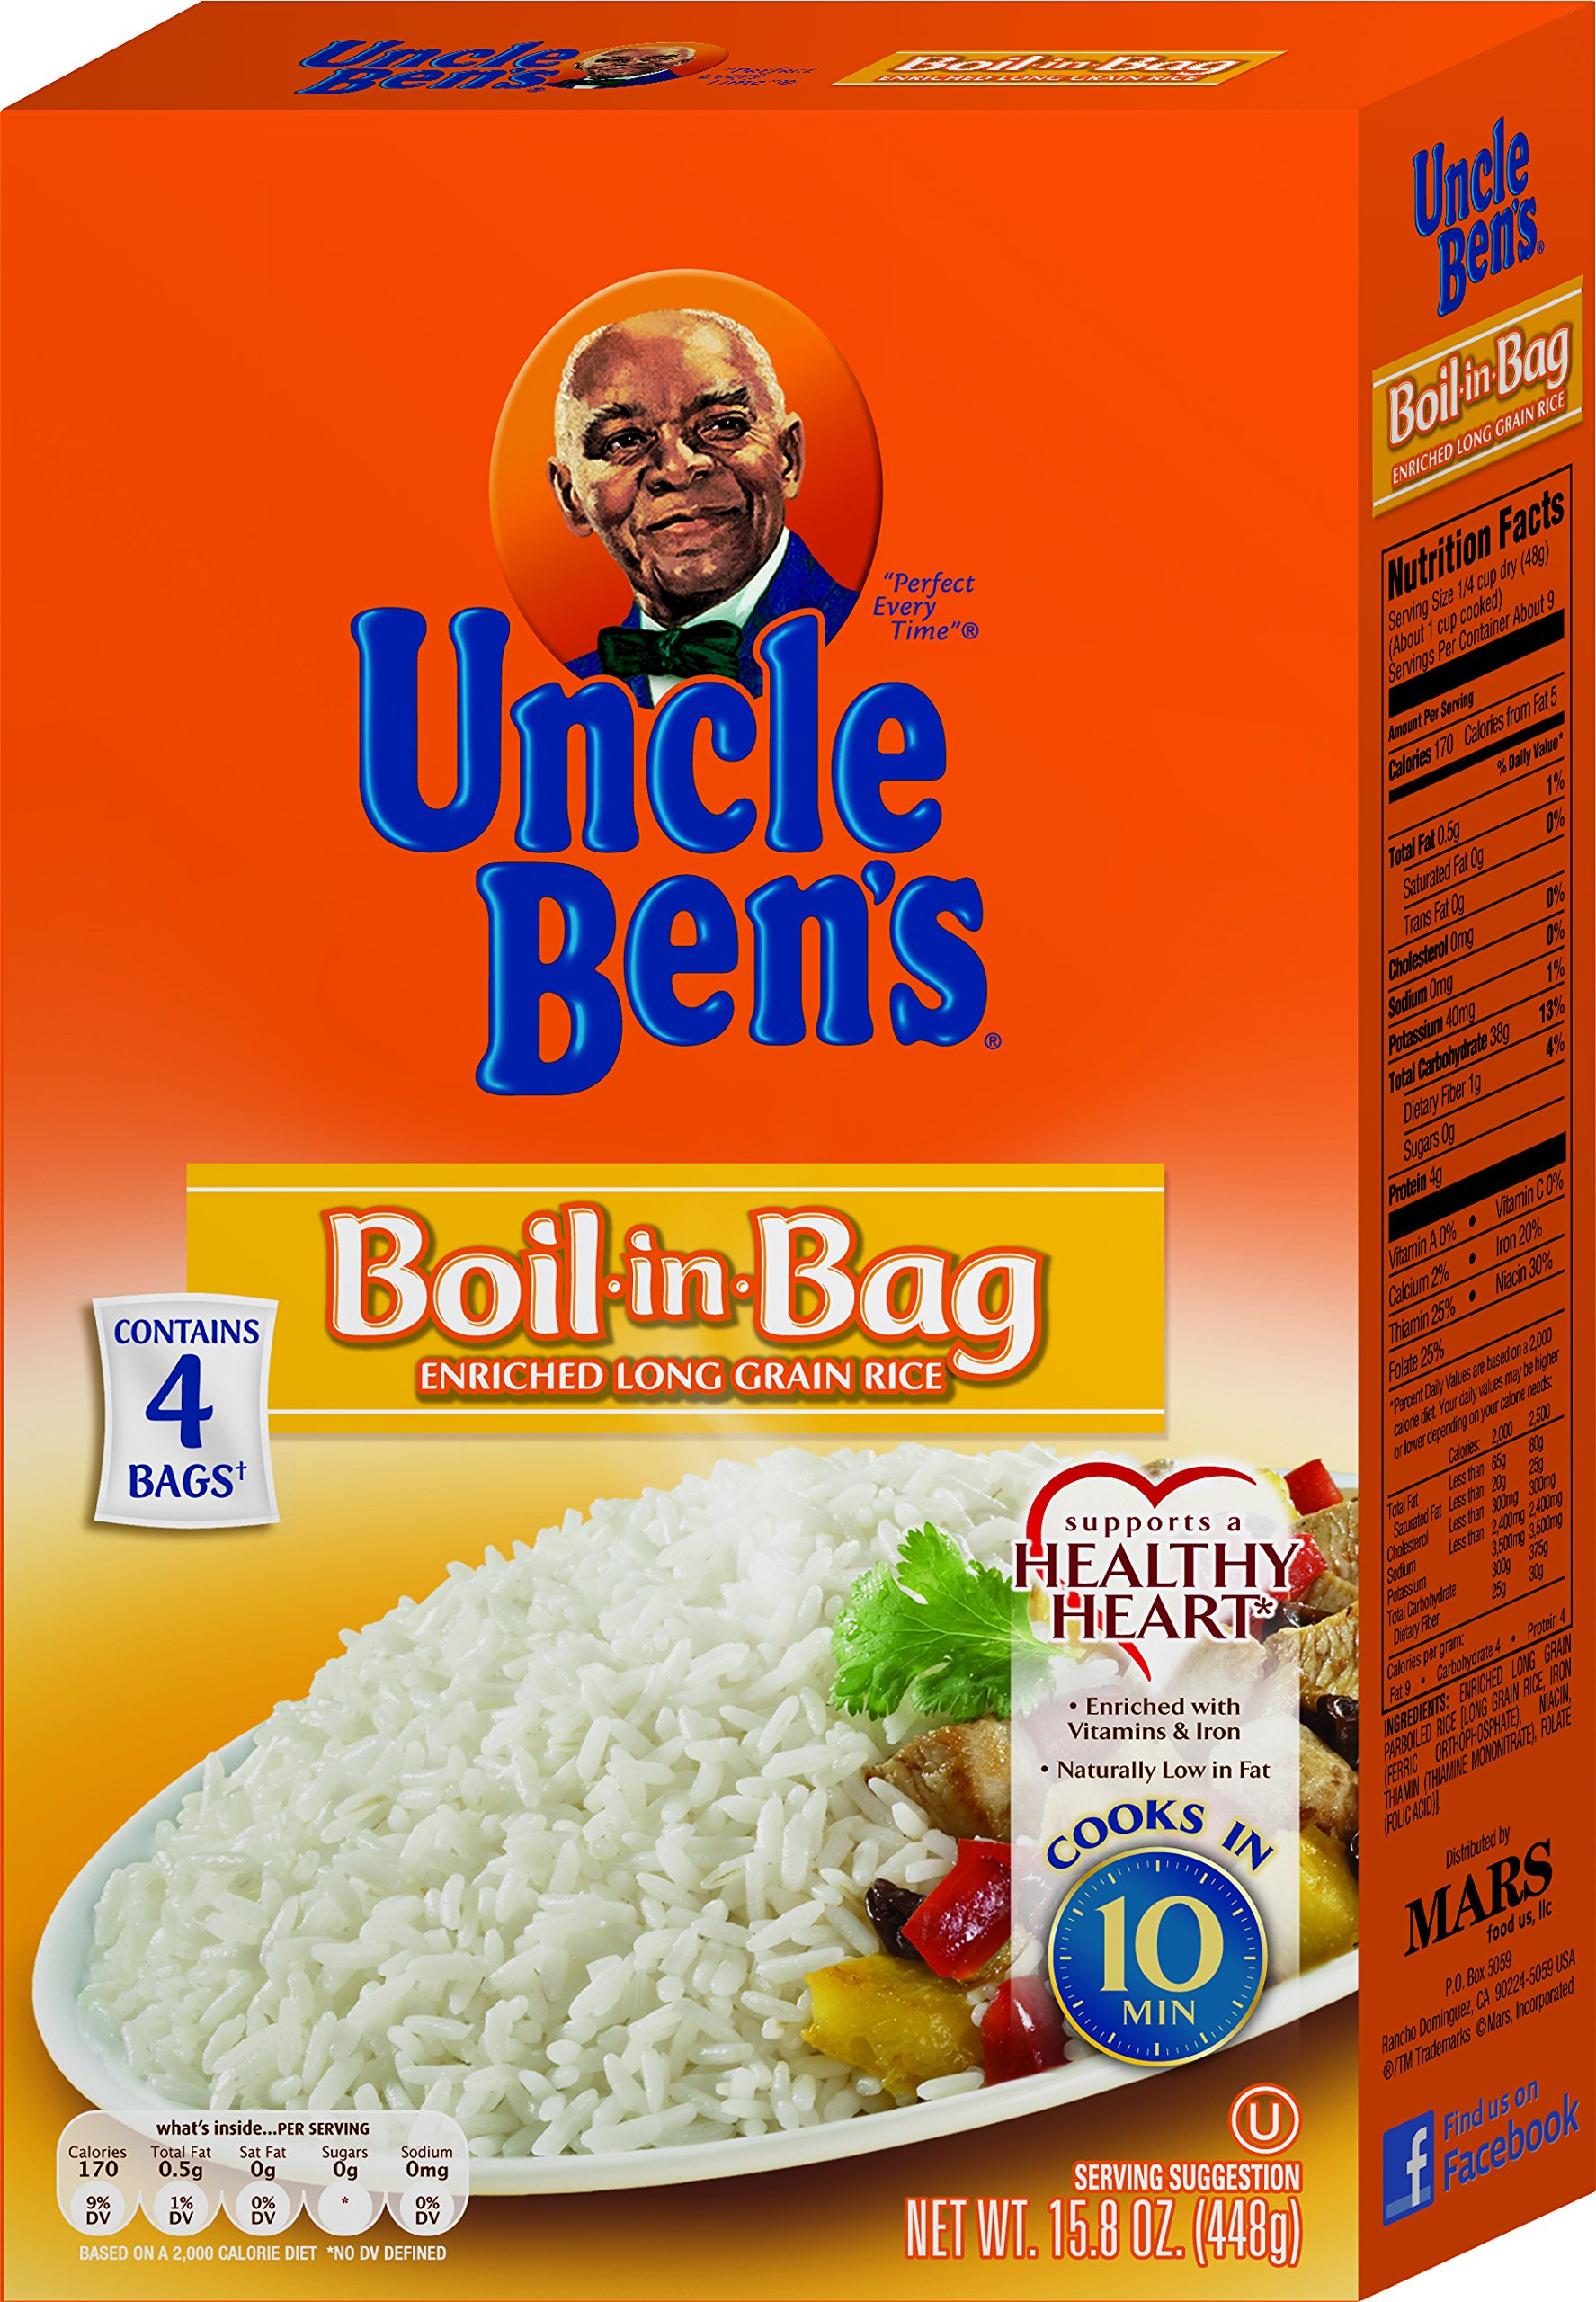 UNCLE BEN'S Boil-In-Bag: White Rice, 15.8oz.